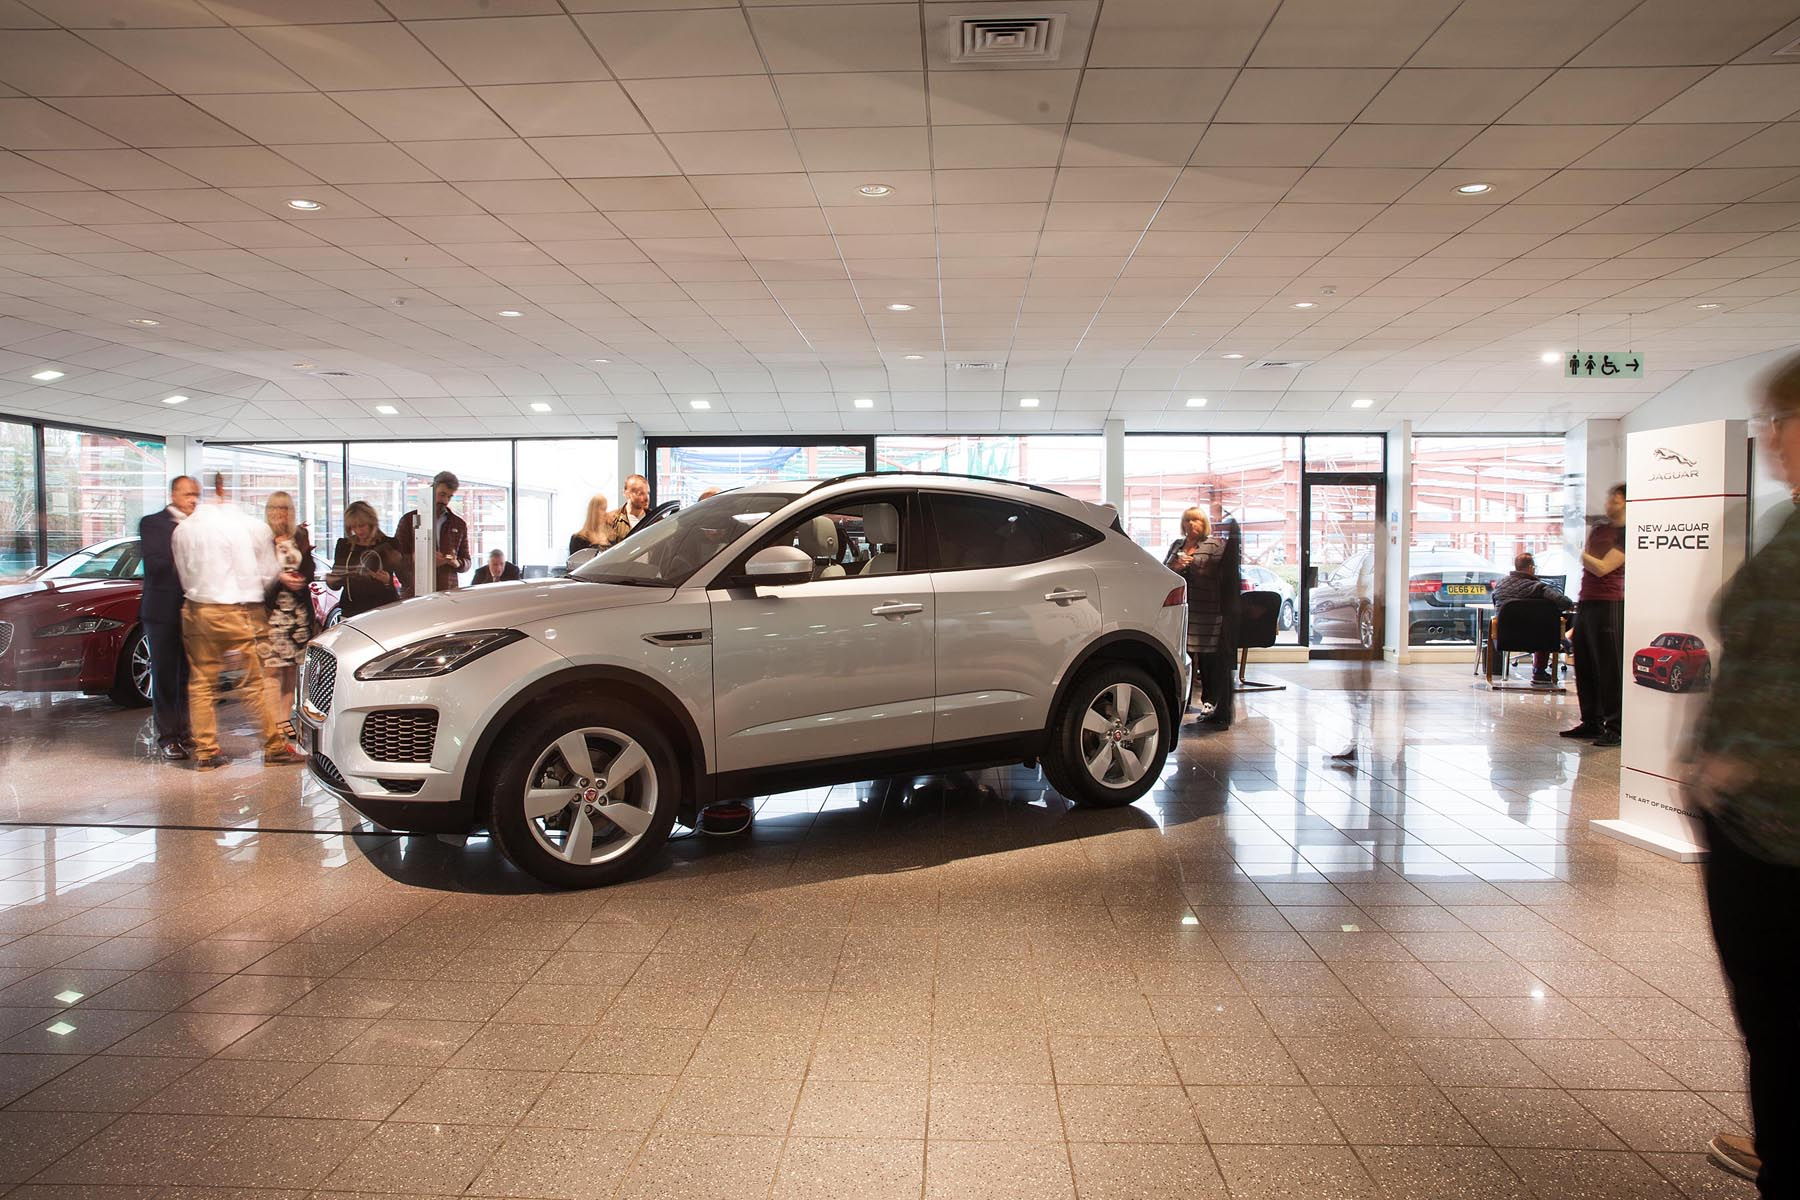 Cars Sale Belfast Fresh New Jaguar E‑pace Revealed In Belfast…